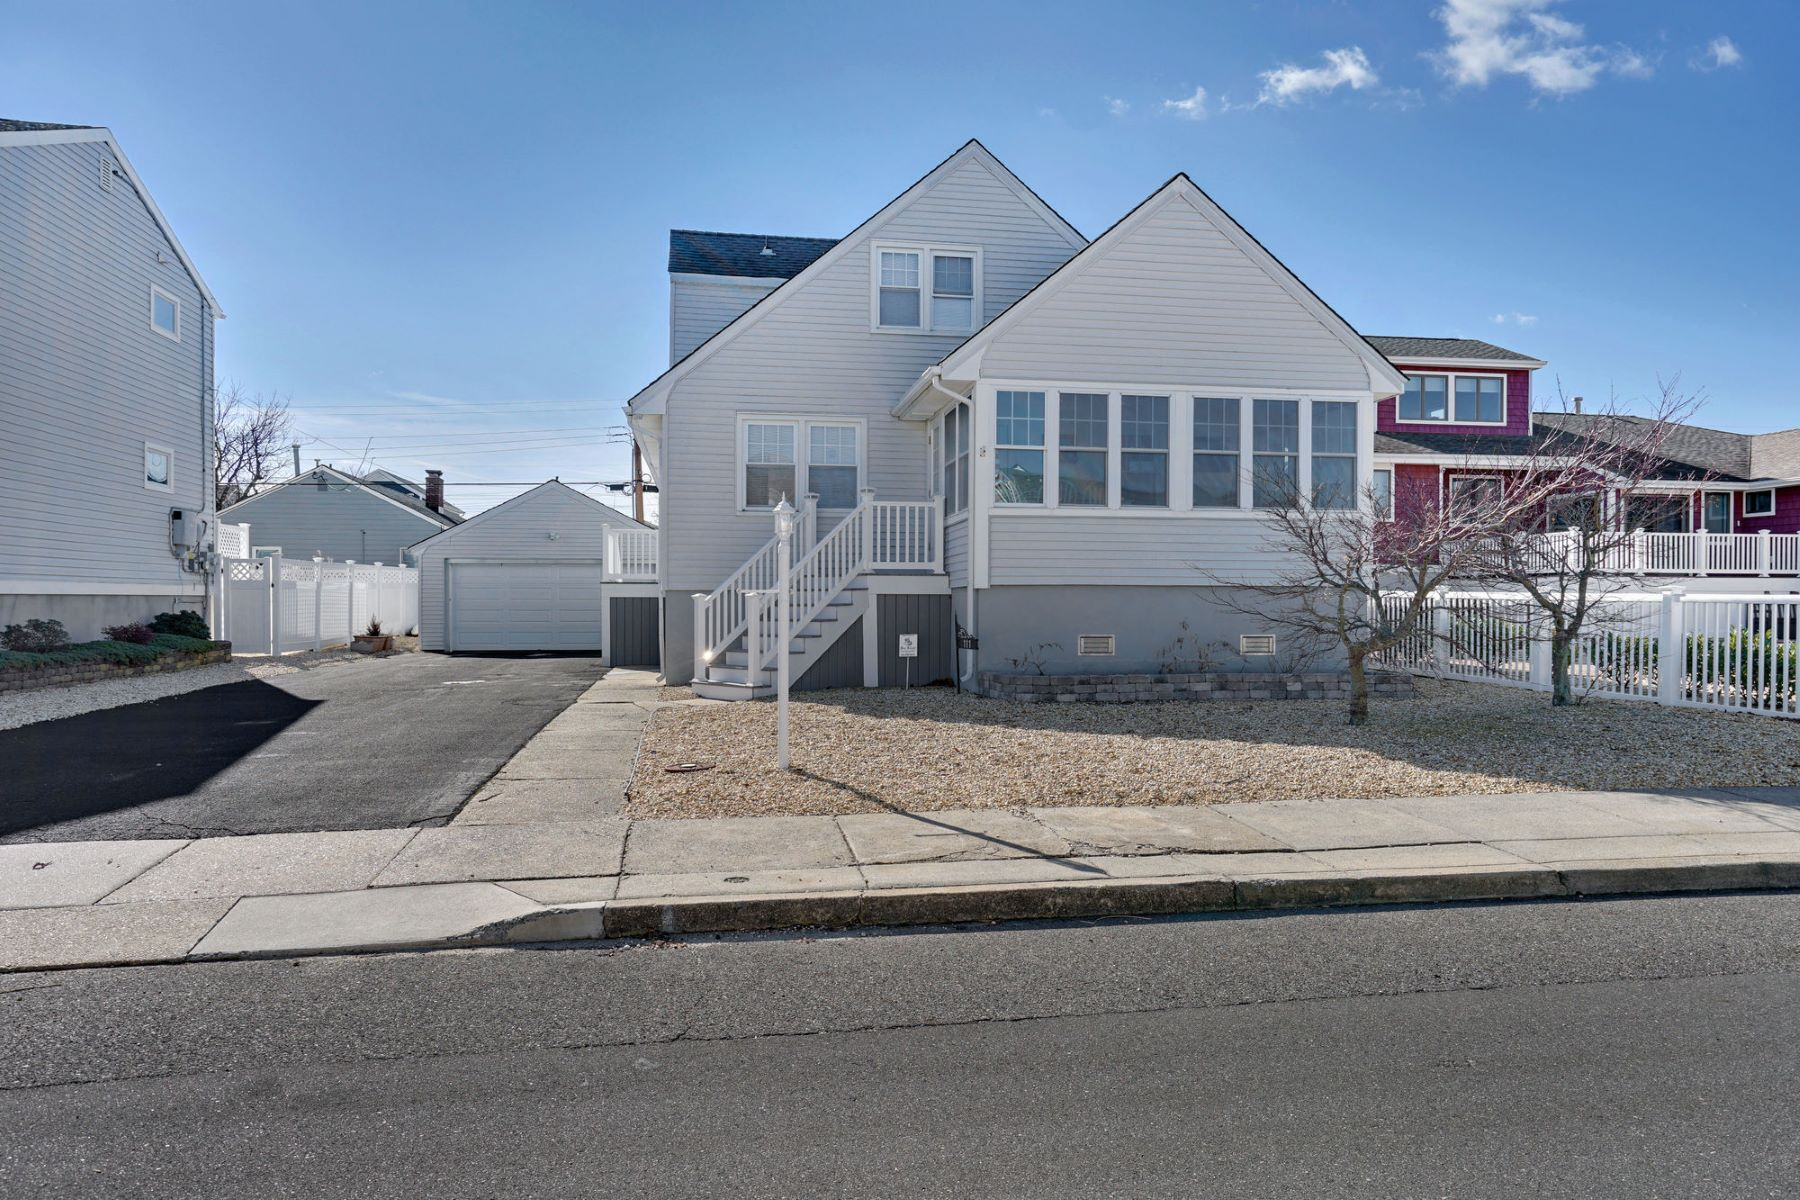 Single Family Homes для того Продажа на Meticulously Maintained Lifted Cape Cod Style Home 111 Saint Lawrence Avenue, Seaside Heights, Нью-Джерси 08751 Соединенные Штаты